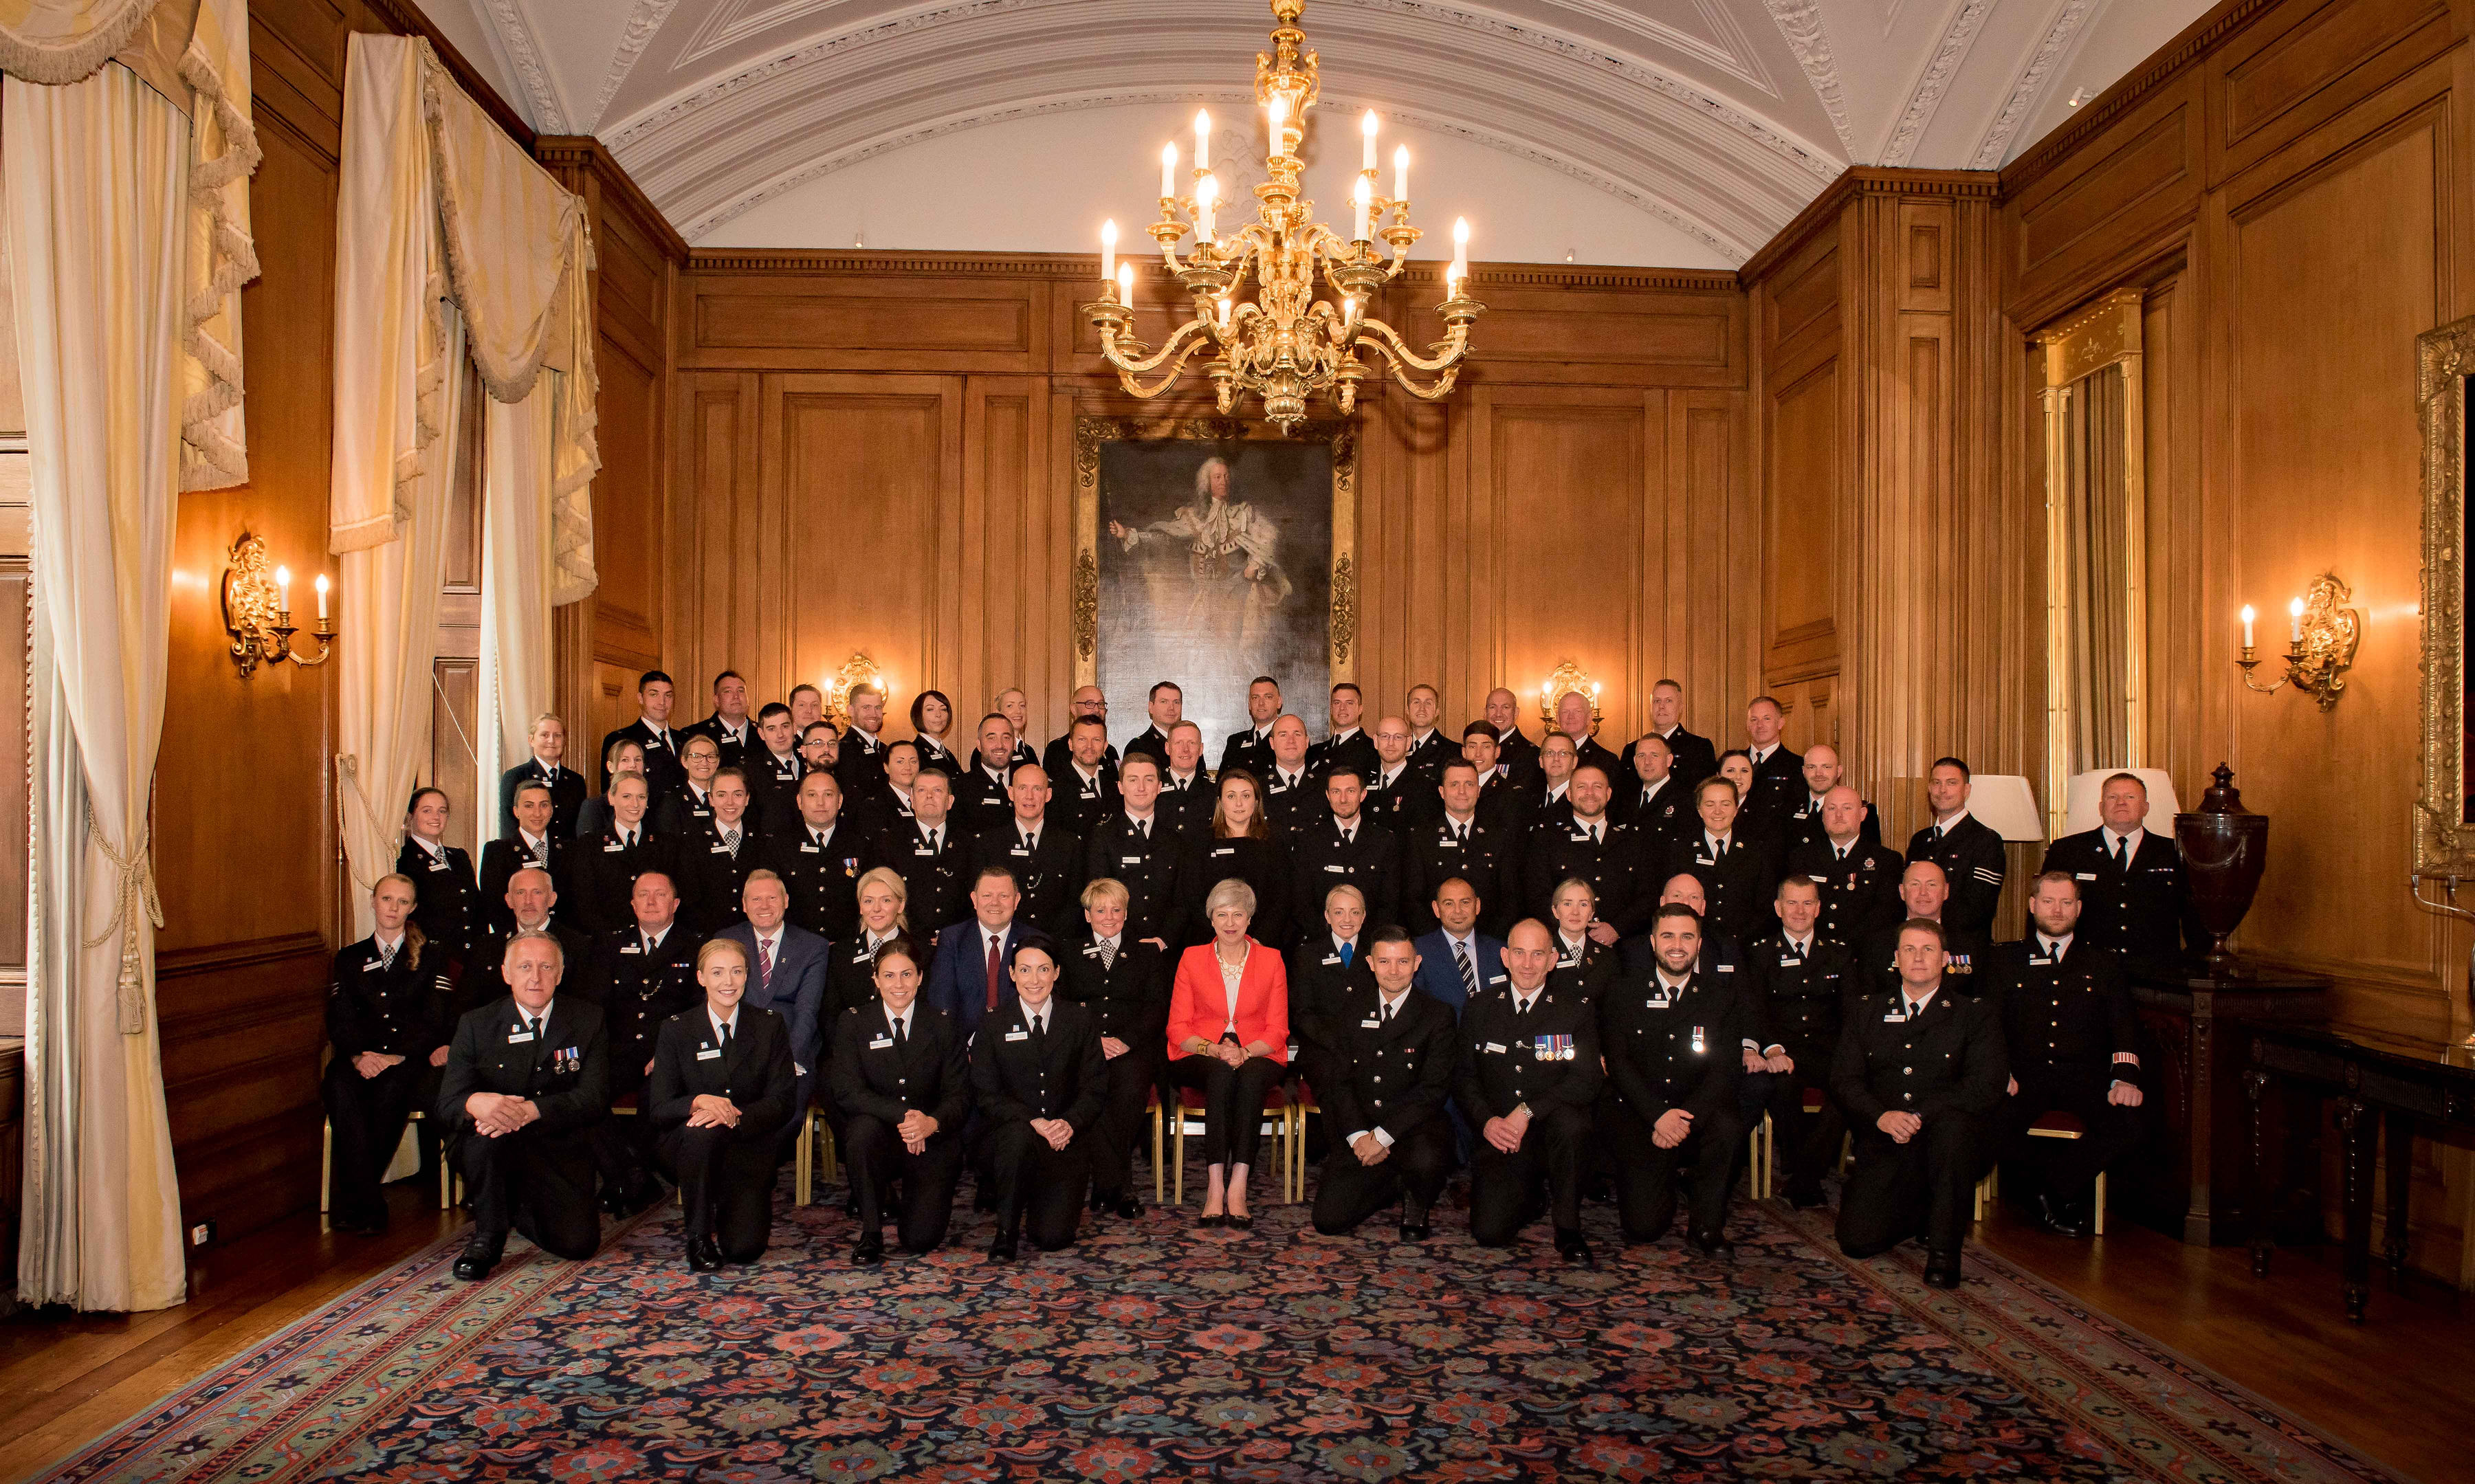 Police Bravery nominees at Downing Street with Prime Minister Theresa May